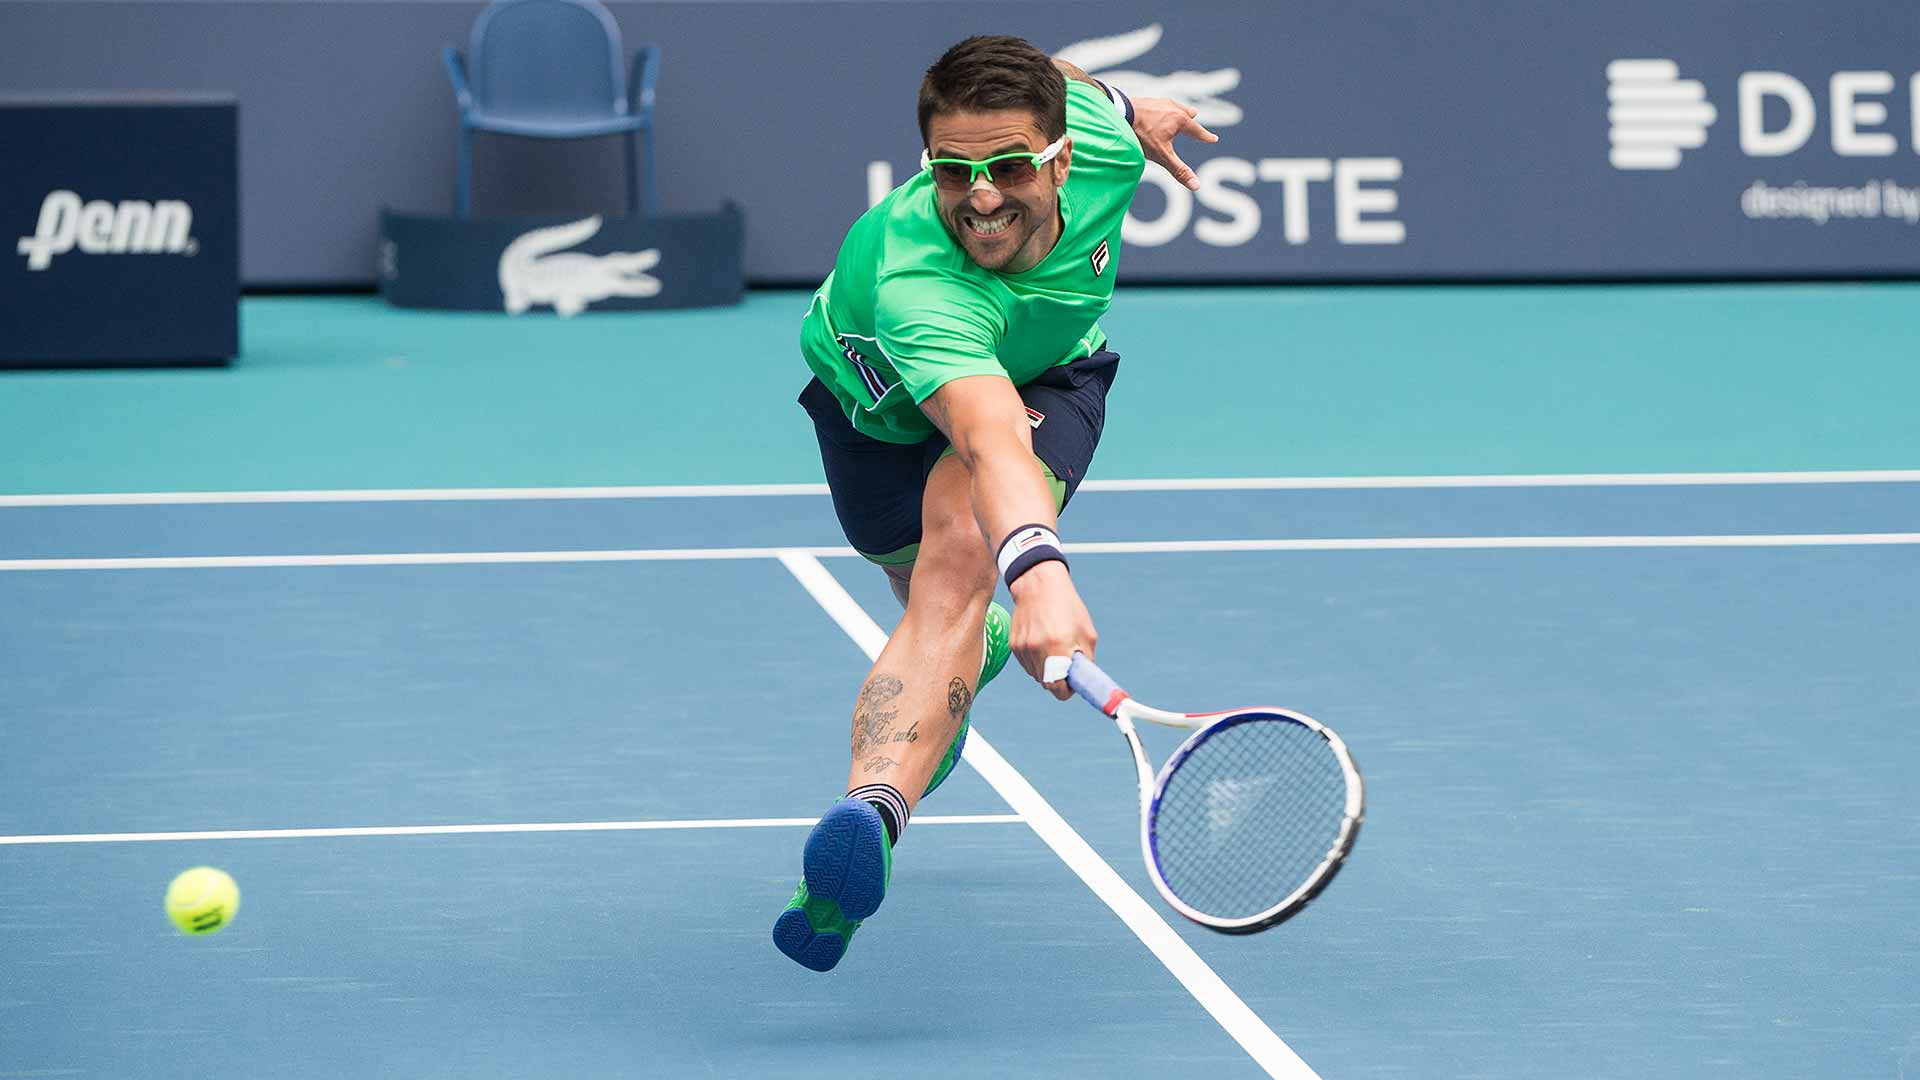 Janko Tipsarevic is on the comeback trail again